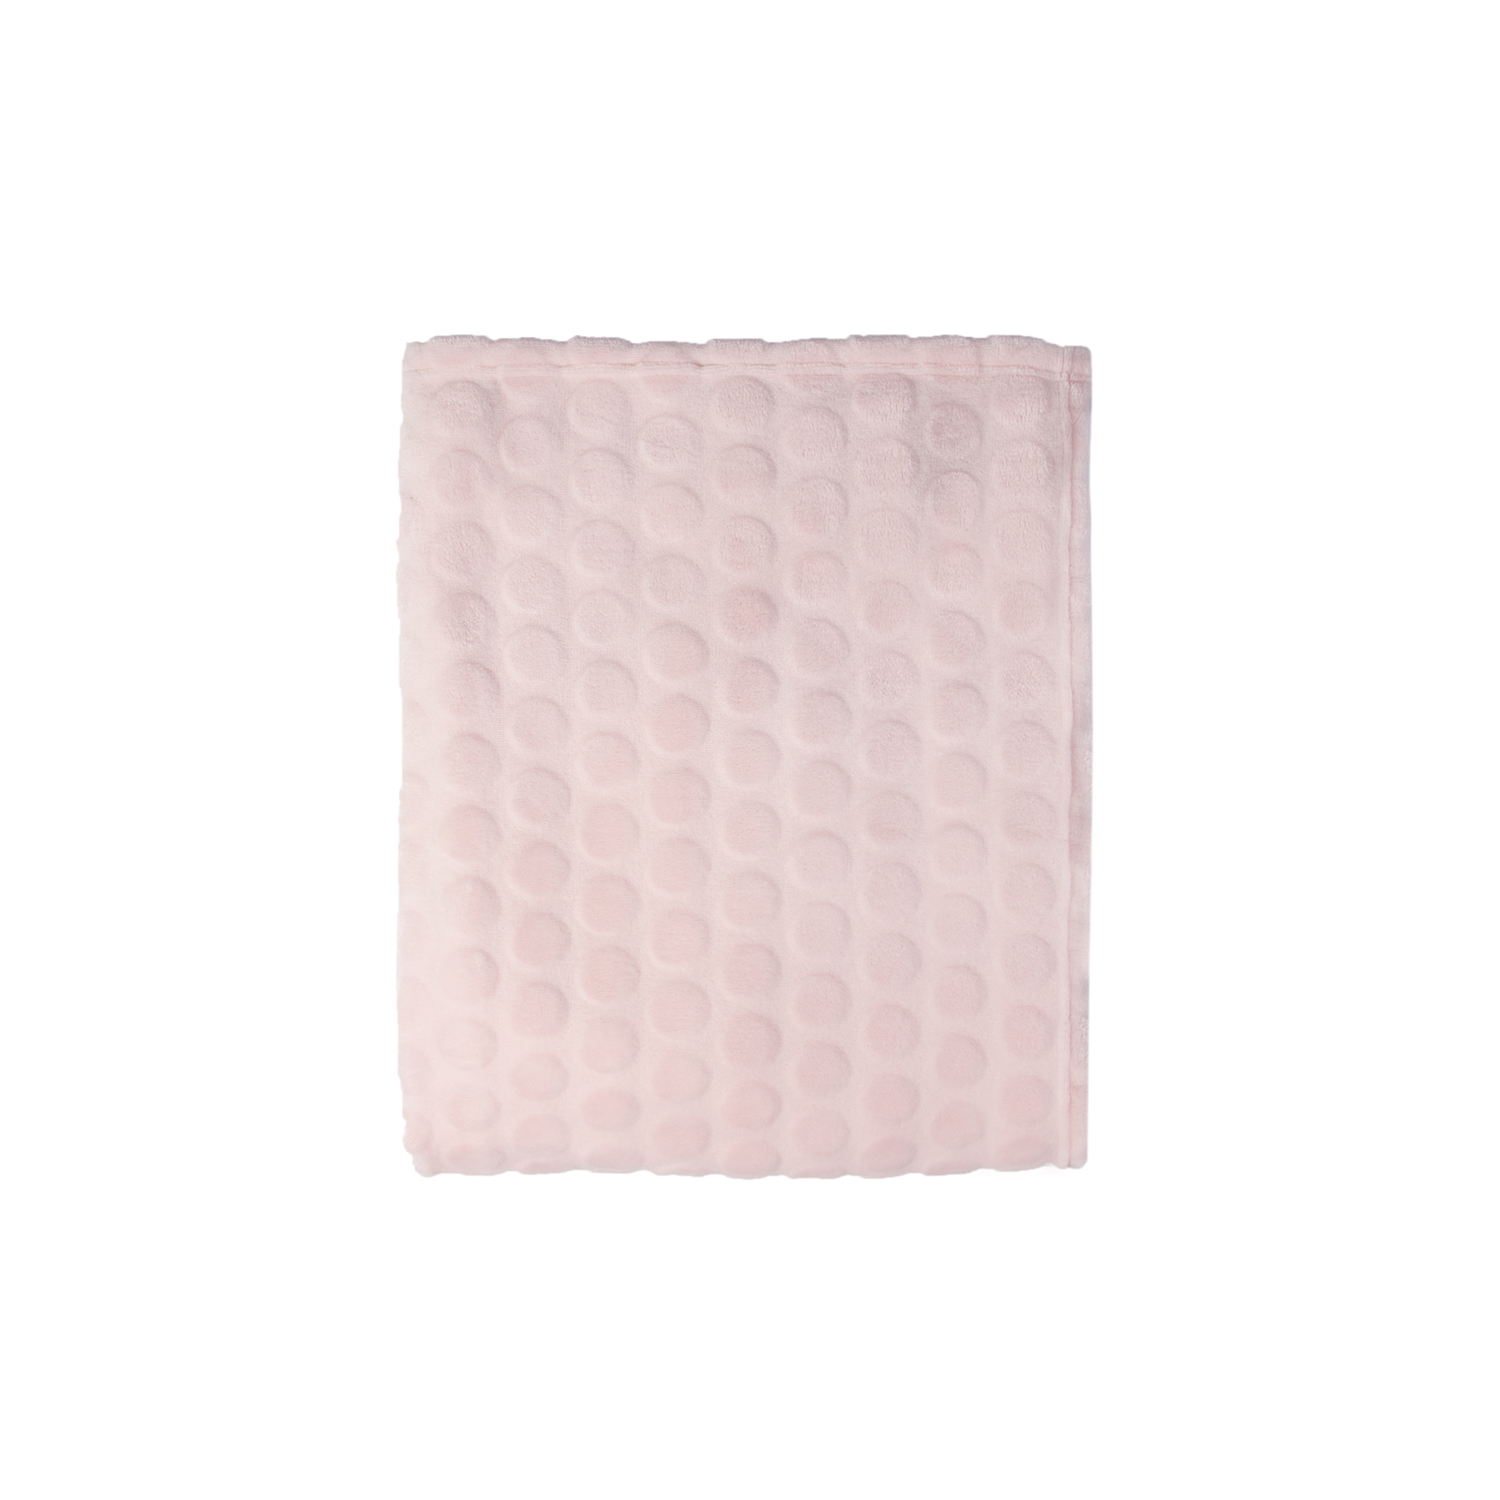 Image of Mistral Soft Dots Flannel Throw, Pink